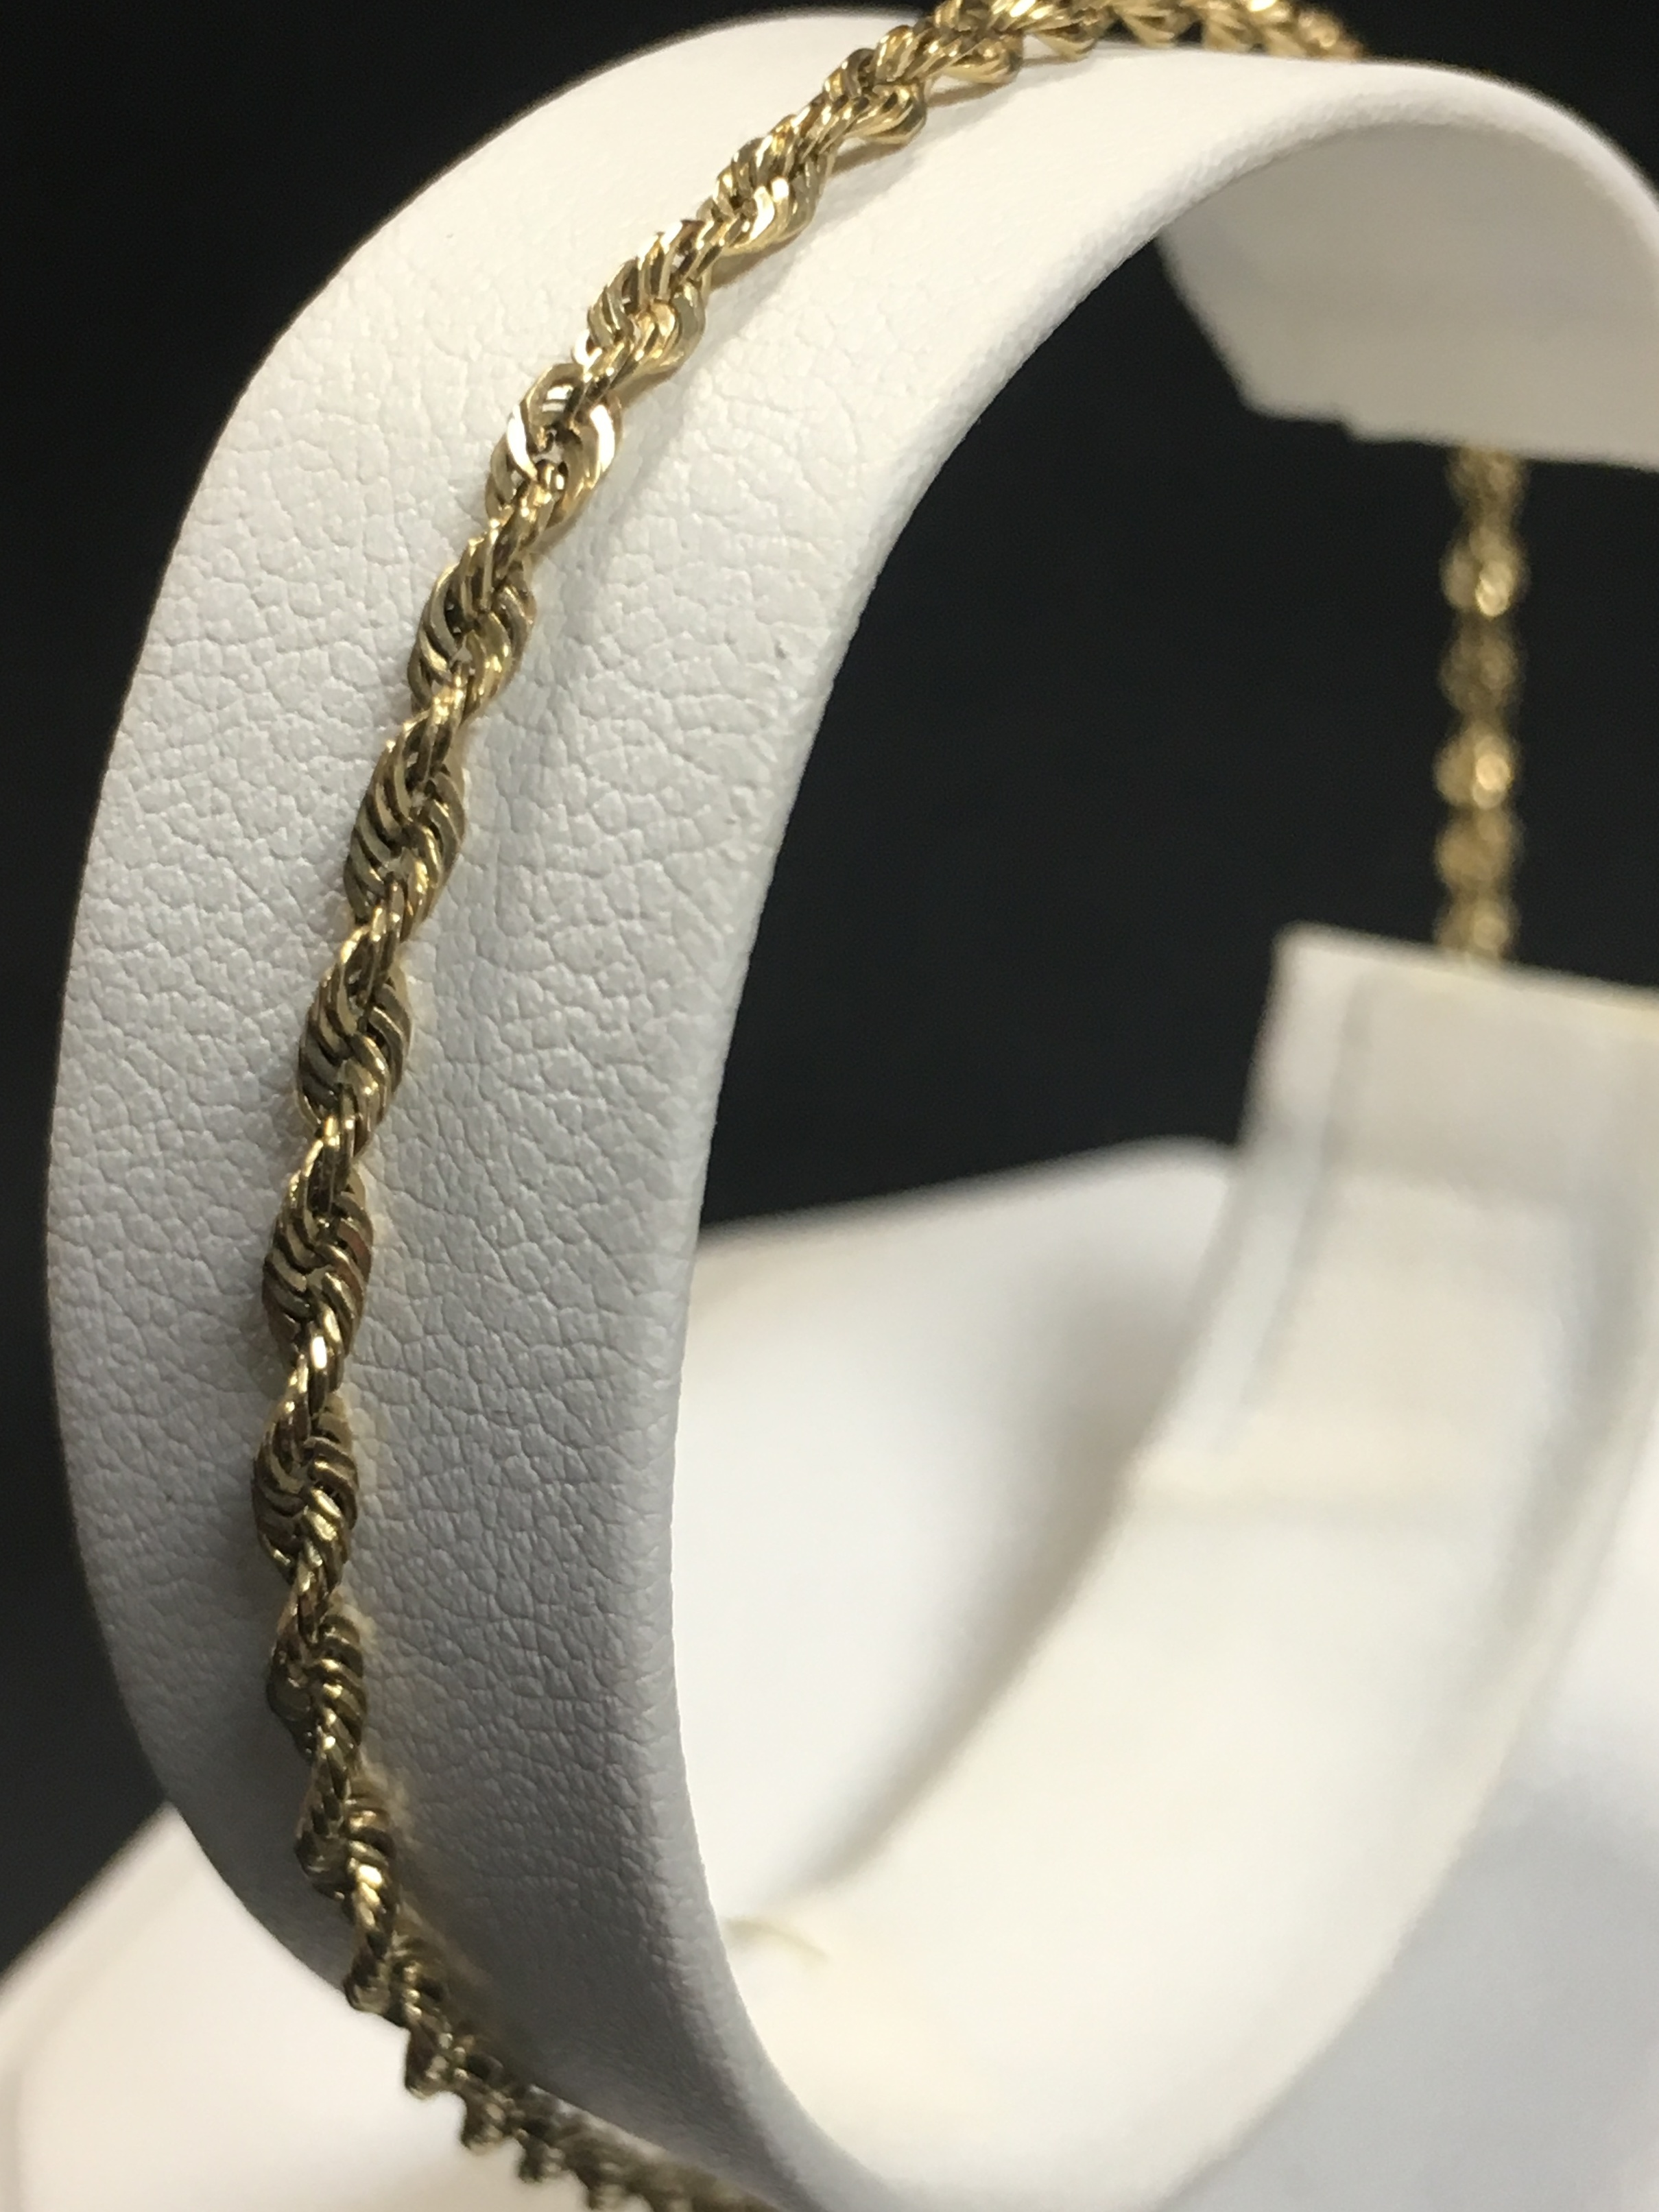 10KT YELLOW GOLD TWIST ROPE CHAIN. LENGTH: 12